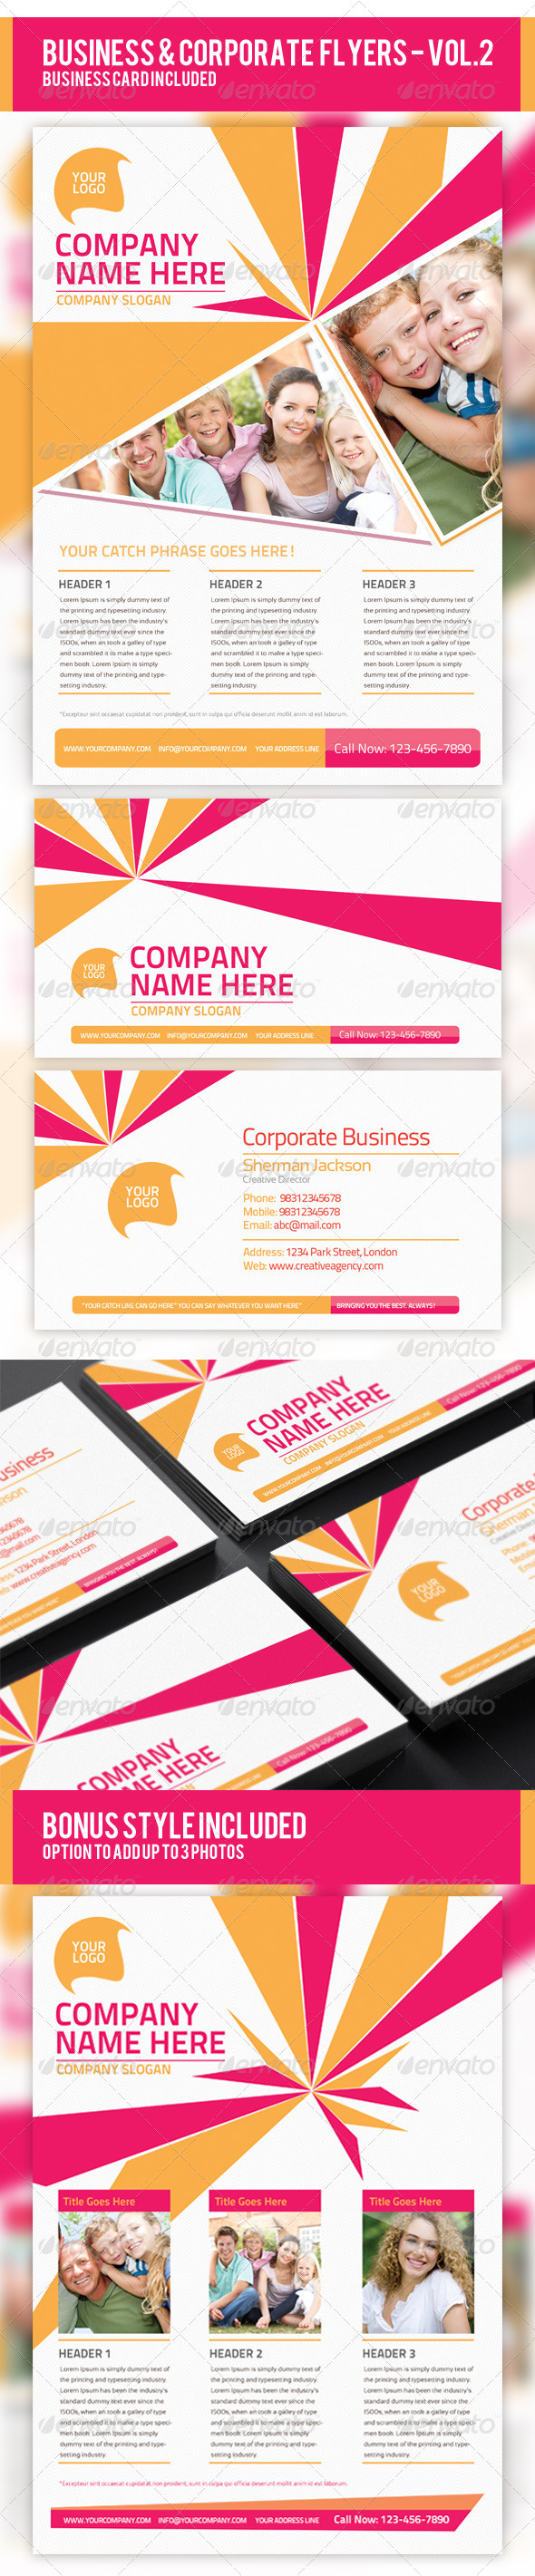 Business & Corporate Flyer PSD Templates - Corporate Flyers